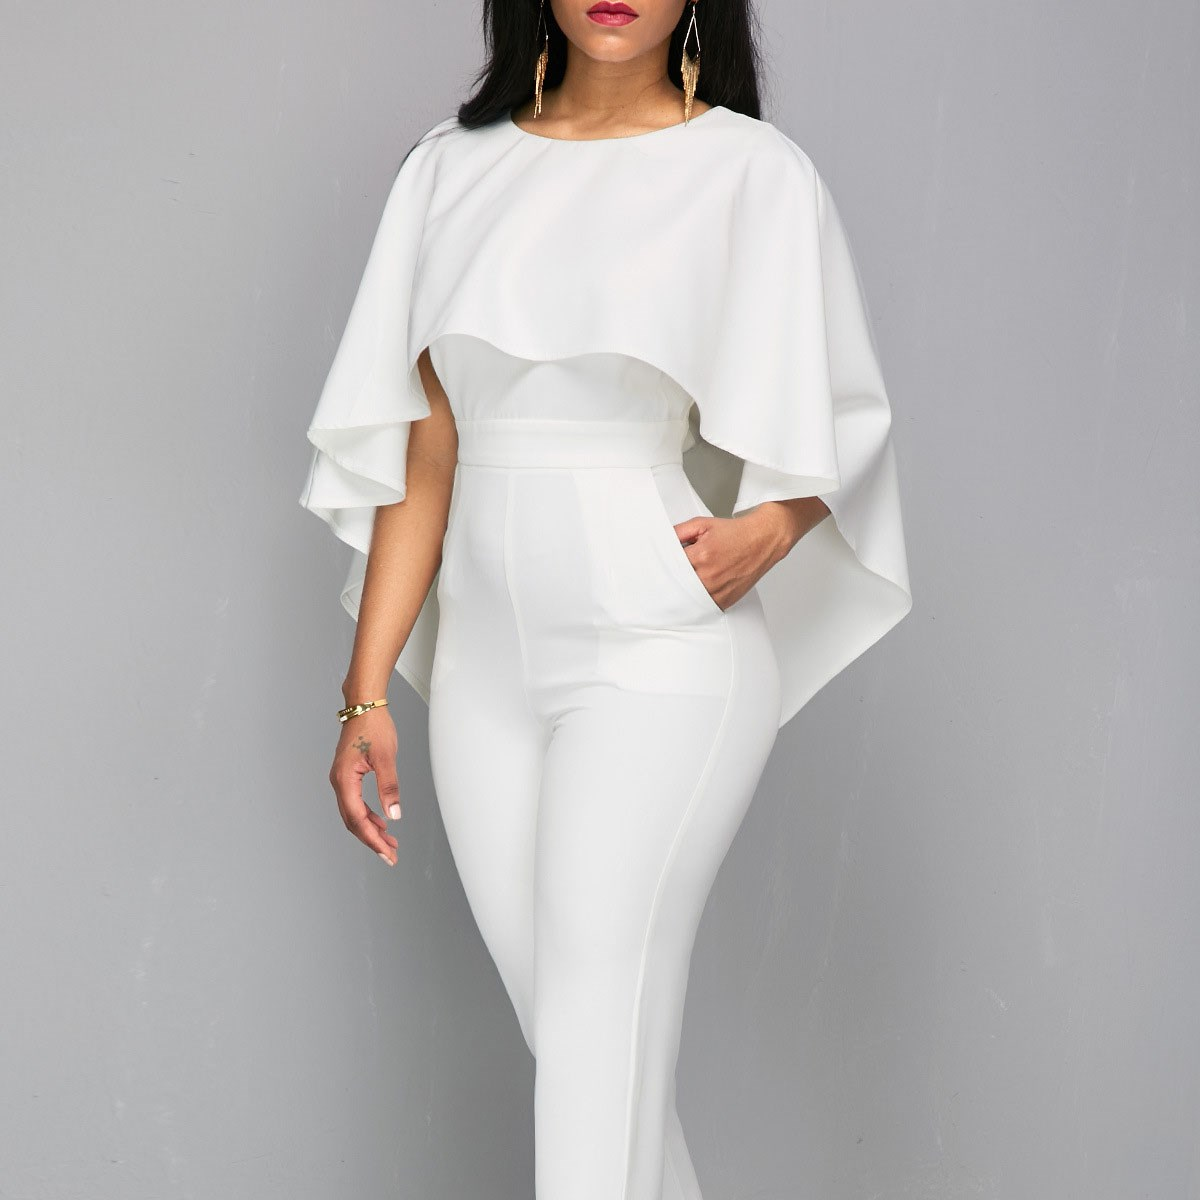 Lady White Elegant O-Neck Solid Cape Sleeve Jumpsuit Women Jumpsuits Boycon Slim Backless Jumpsuits Rompers